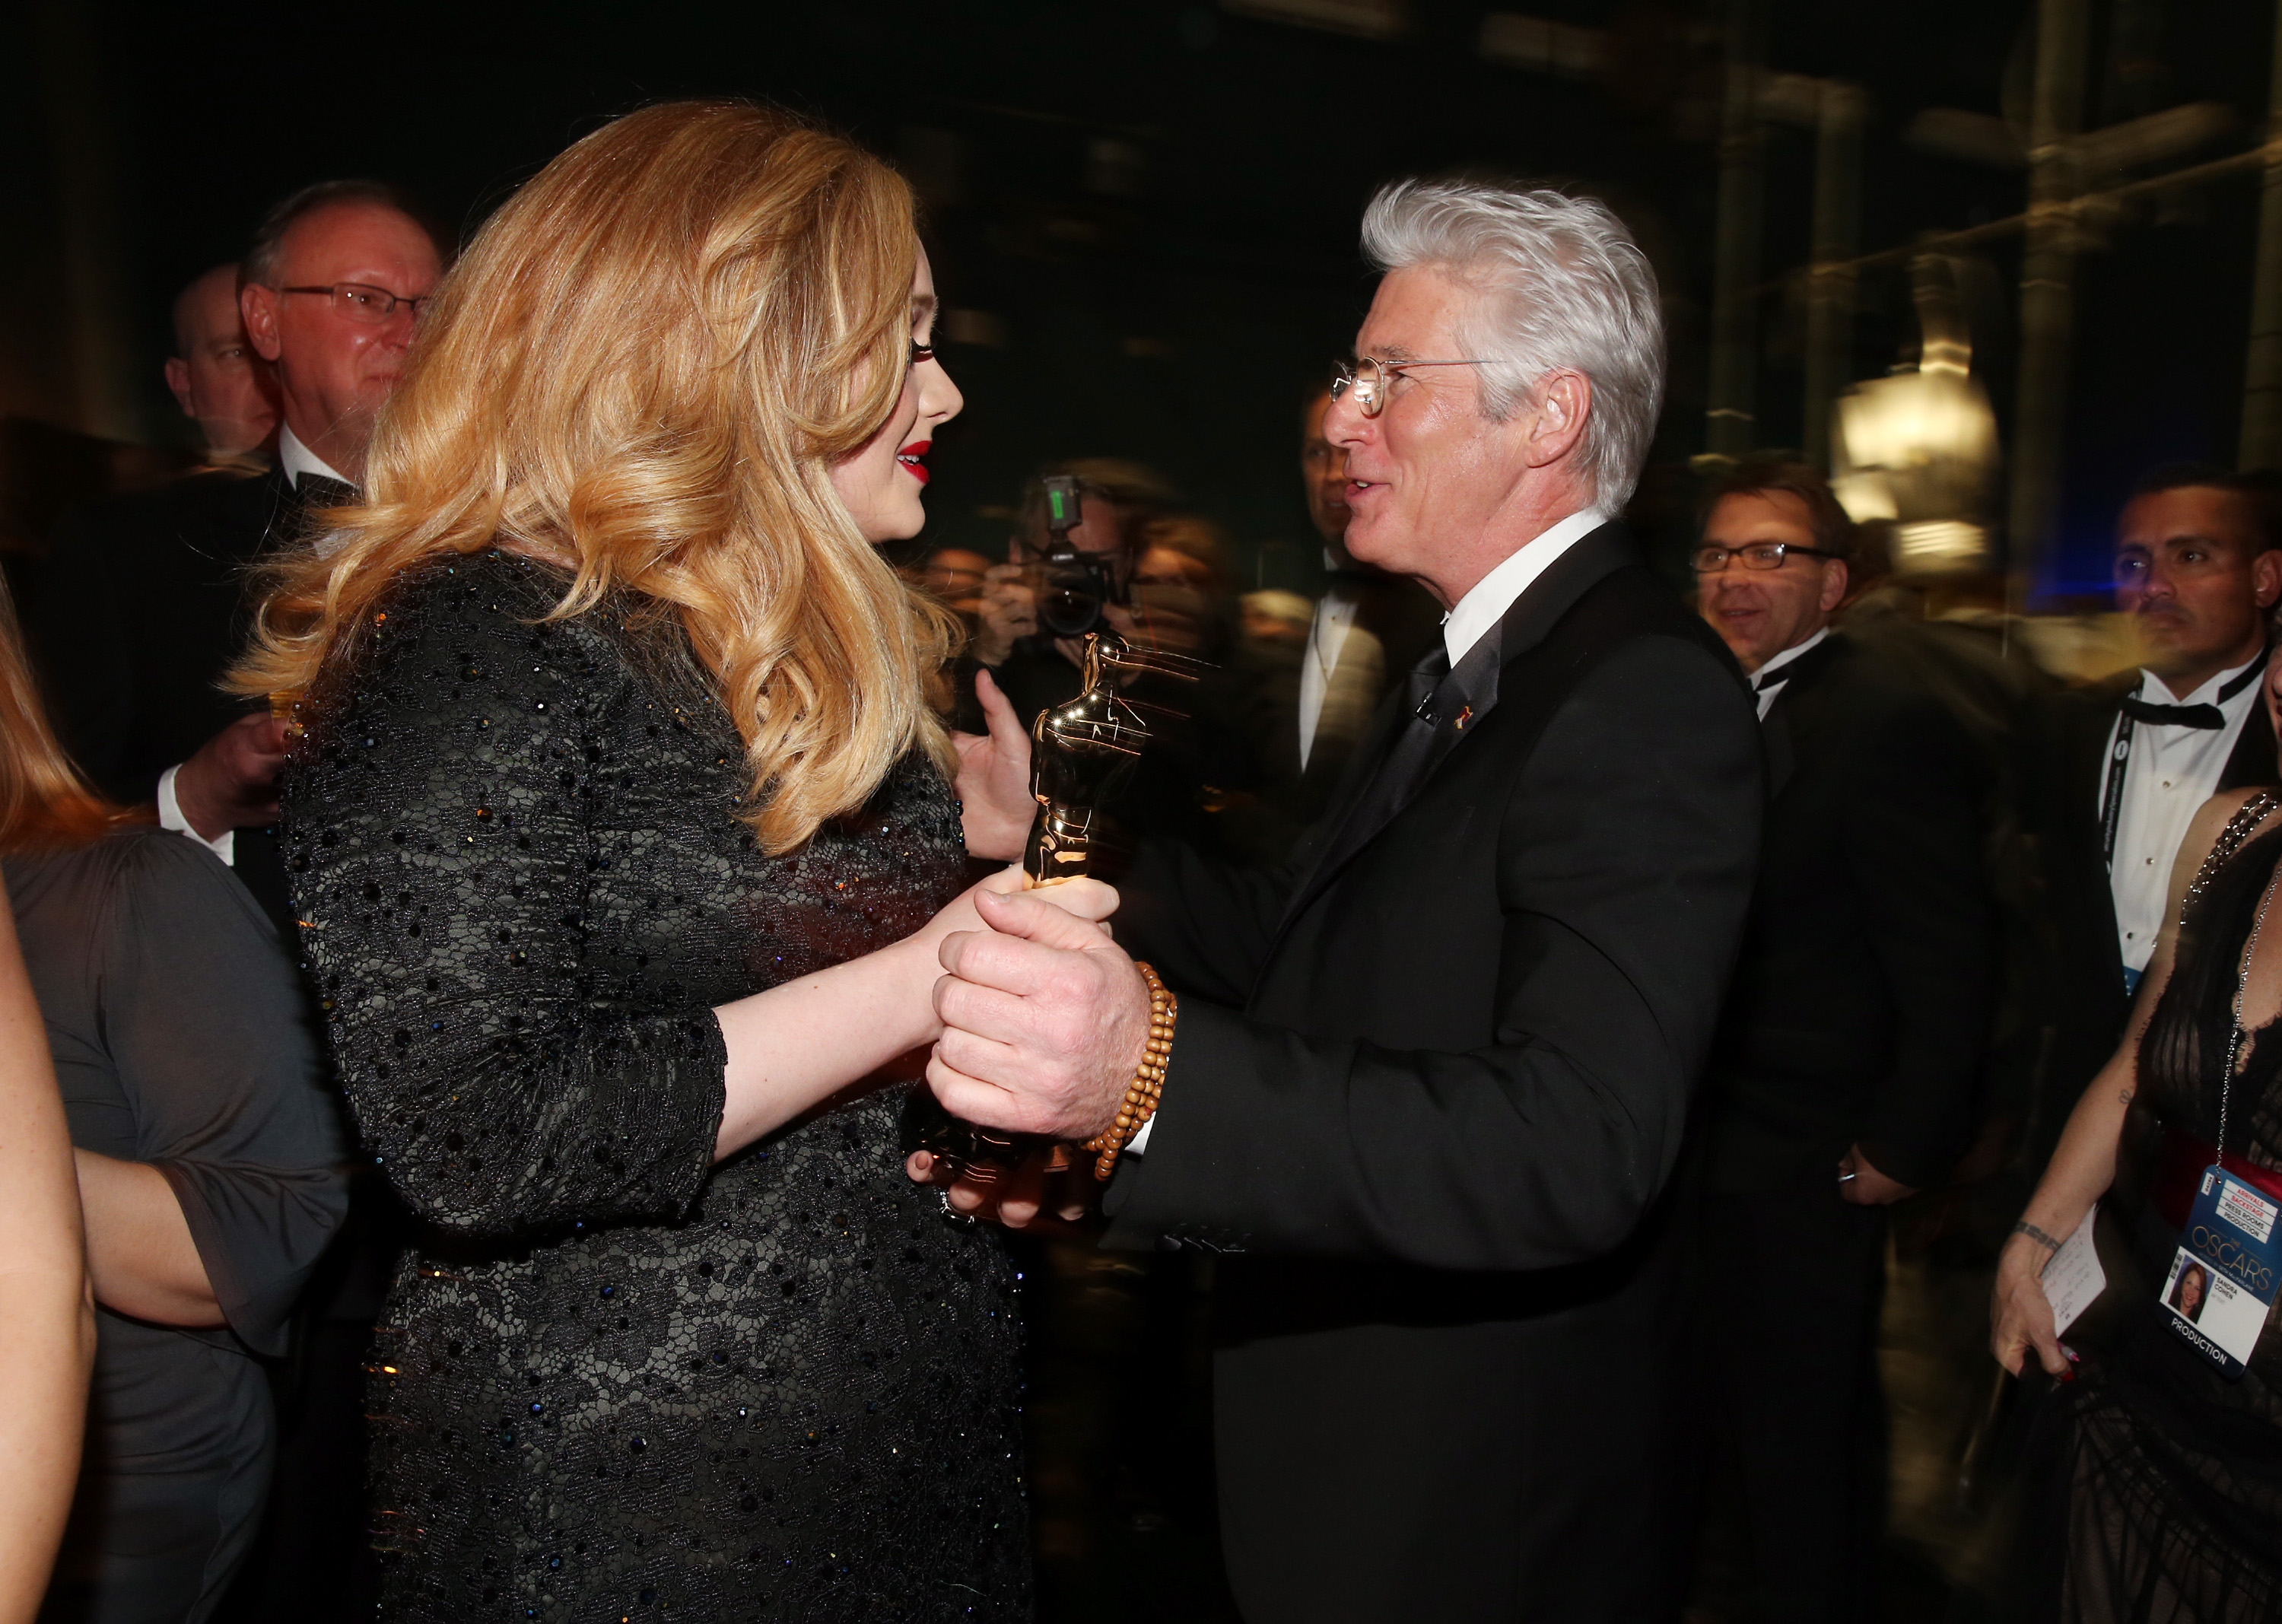 Adele Adkins and Richard Gere backstag